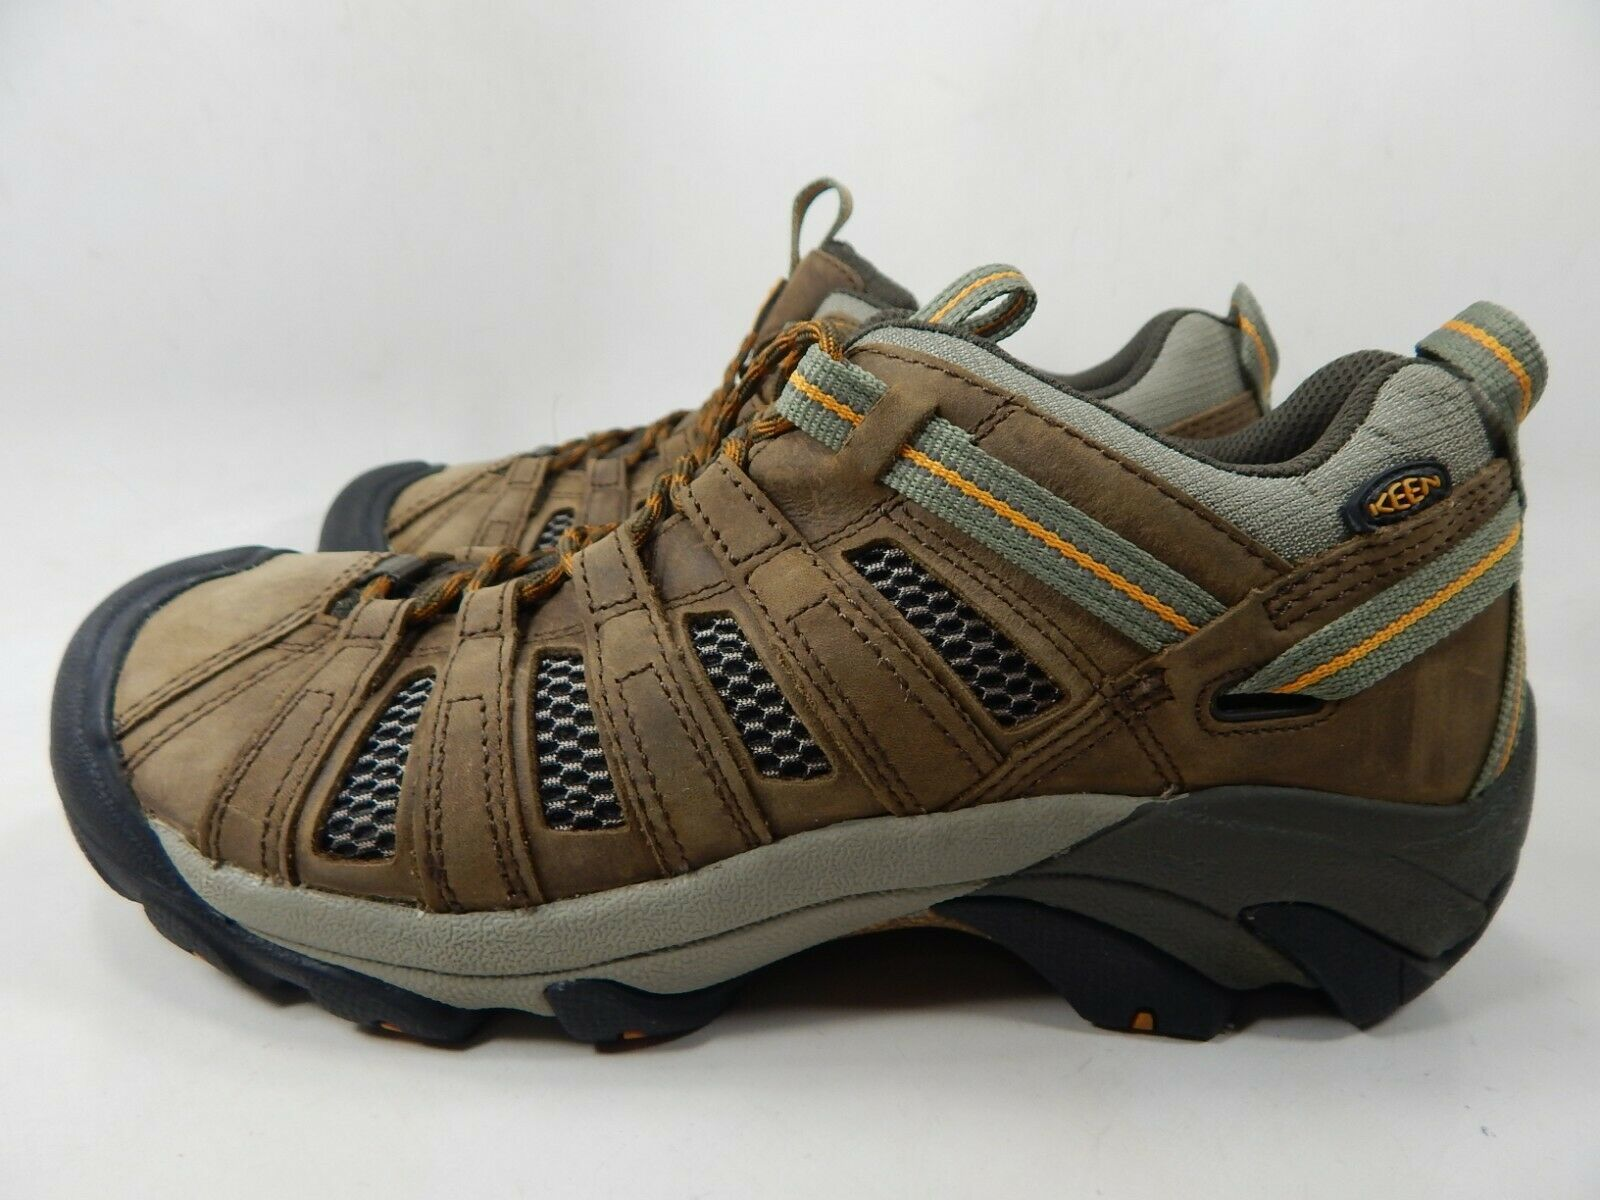 Keen Voyageur Low Top Size US 10.5 M (D) EU 44 Men's Trail Hiking Shoes Brown image 4